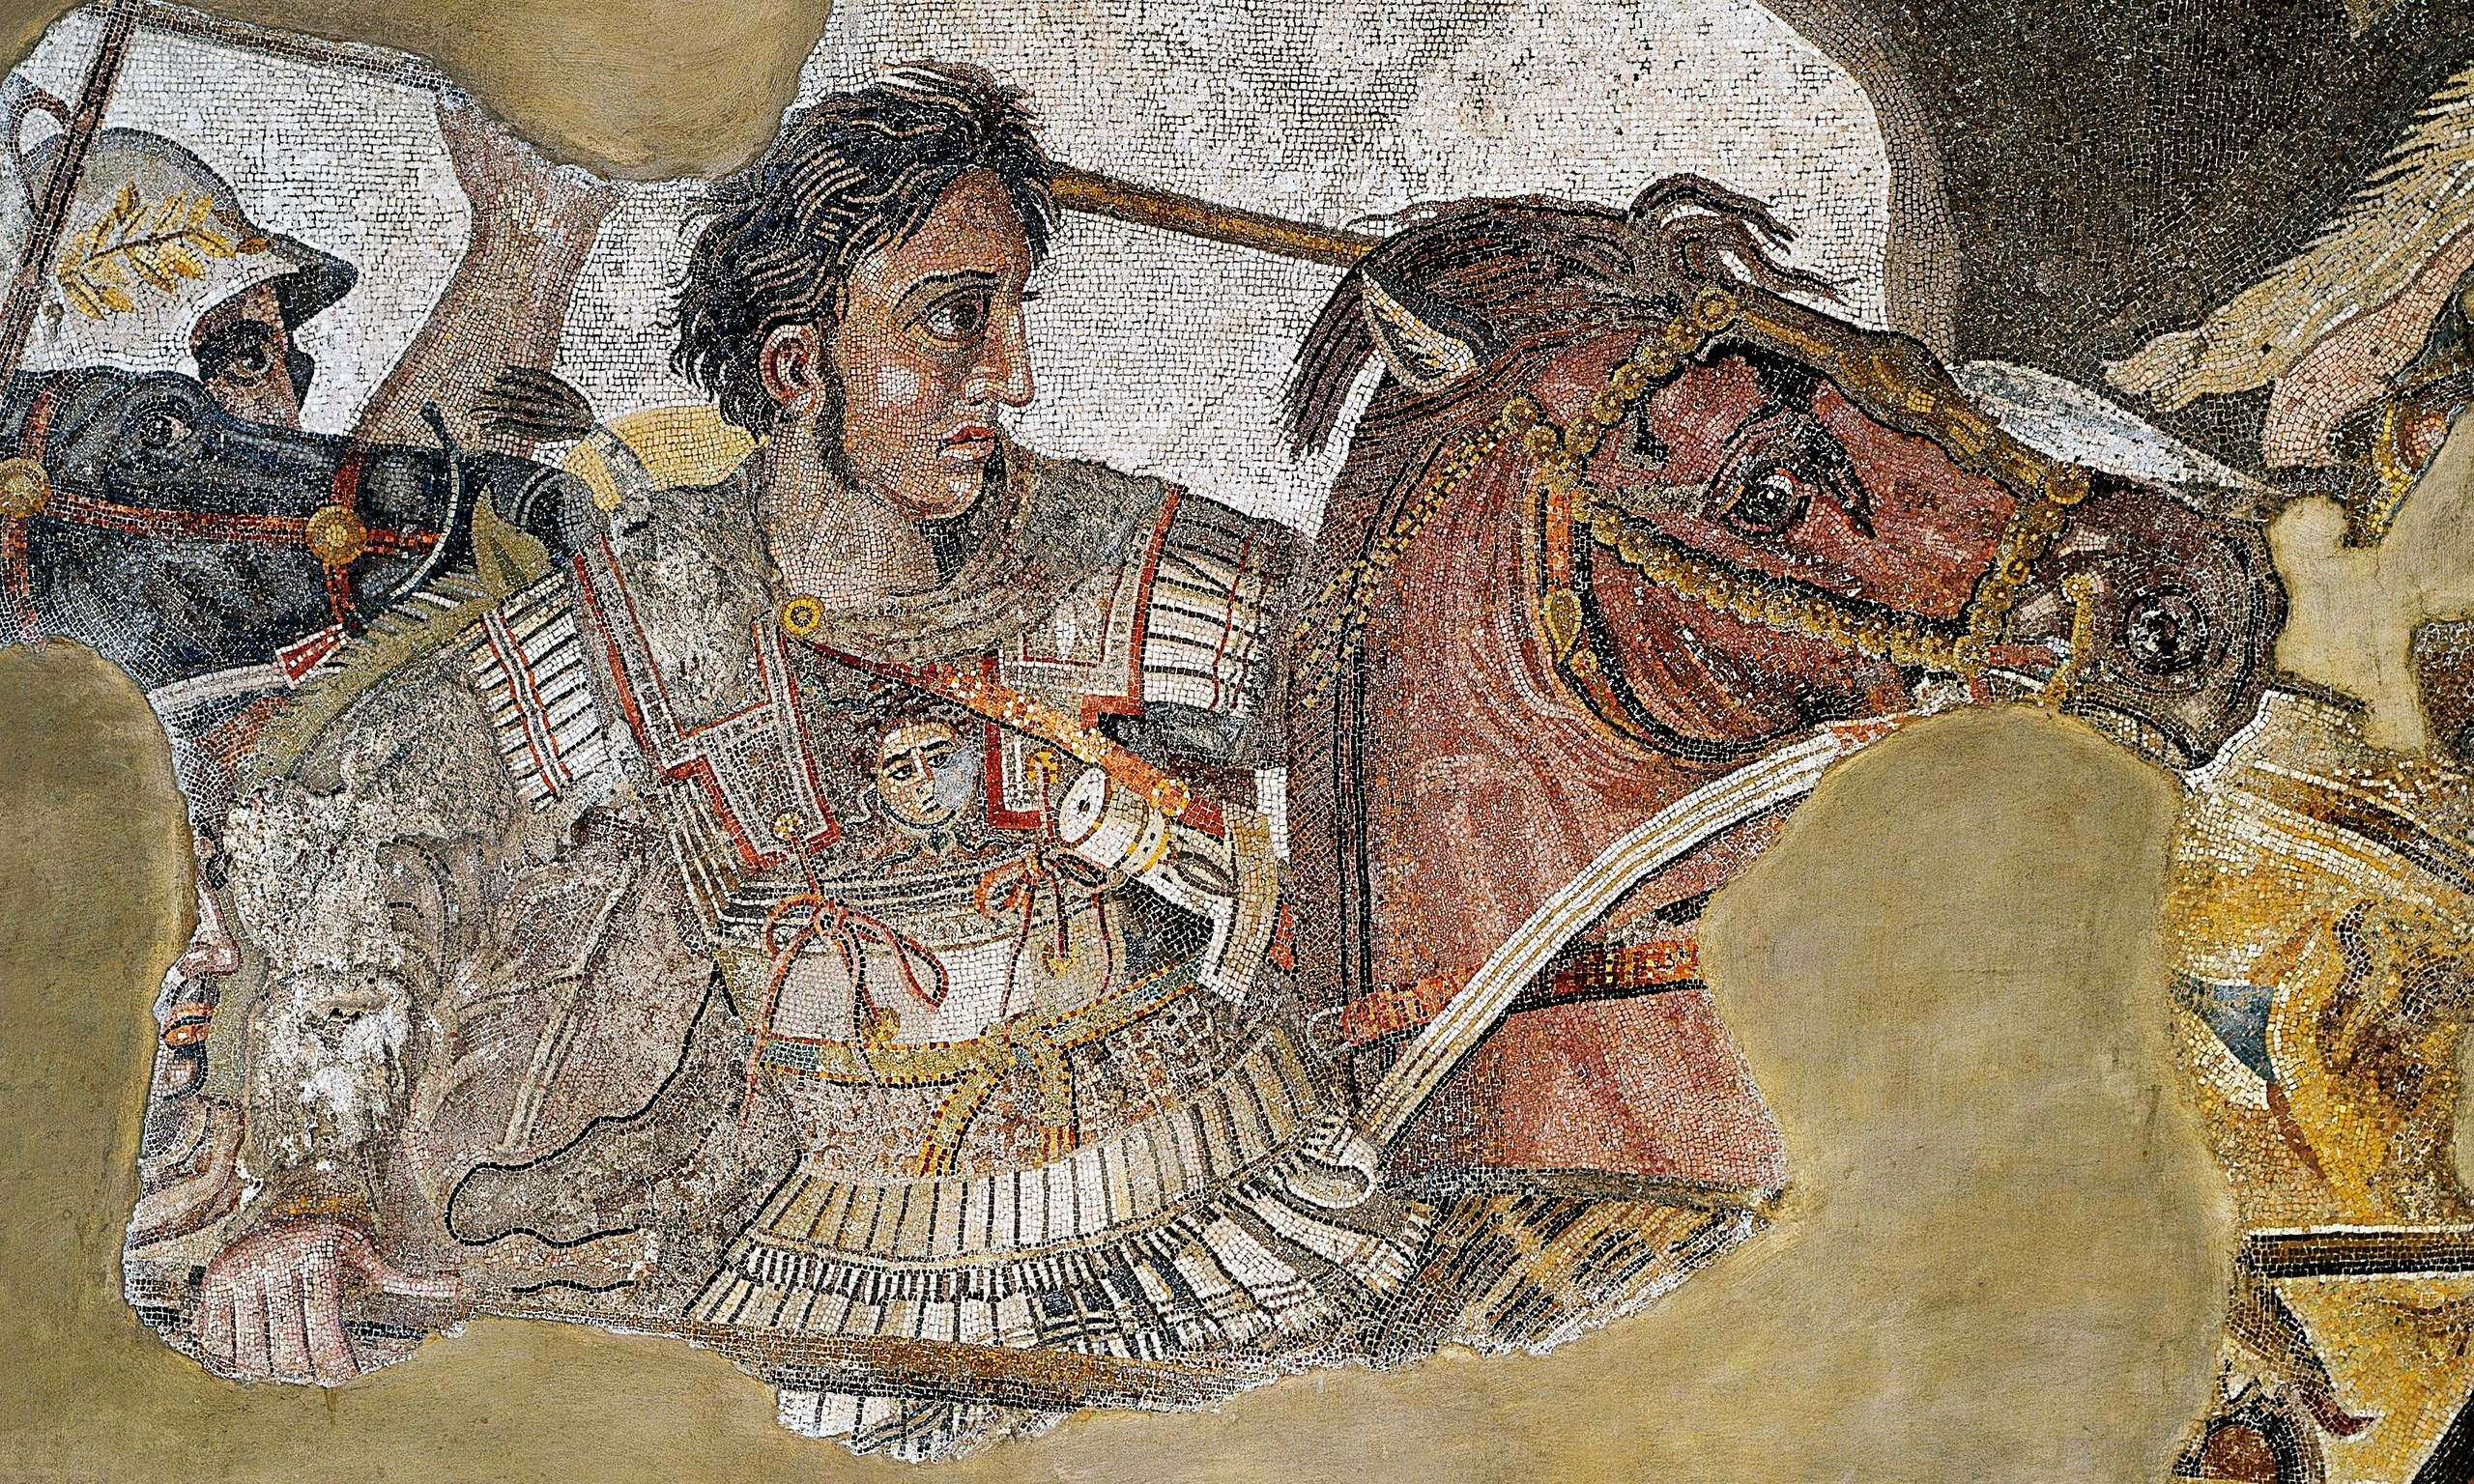 7. Alexander the Great refuses to choose an heir